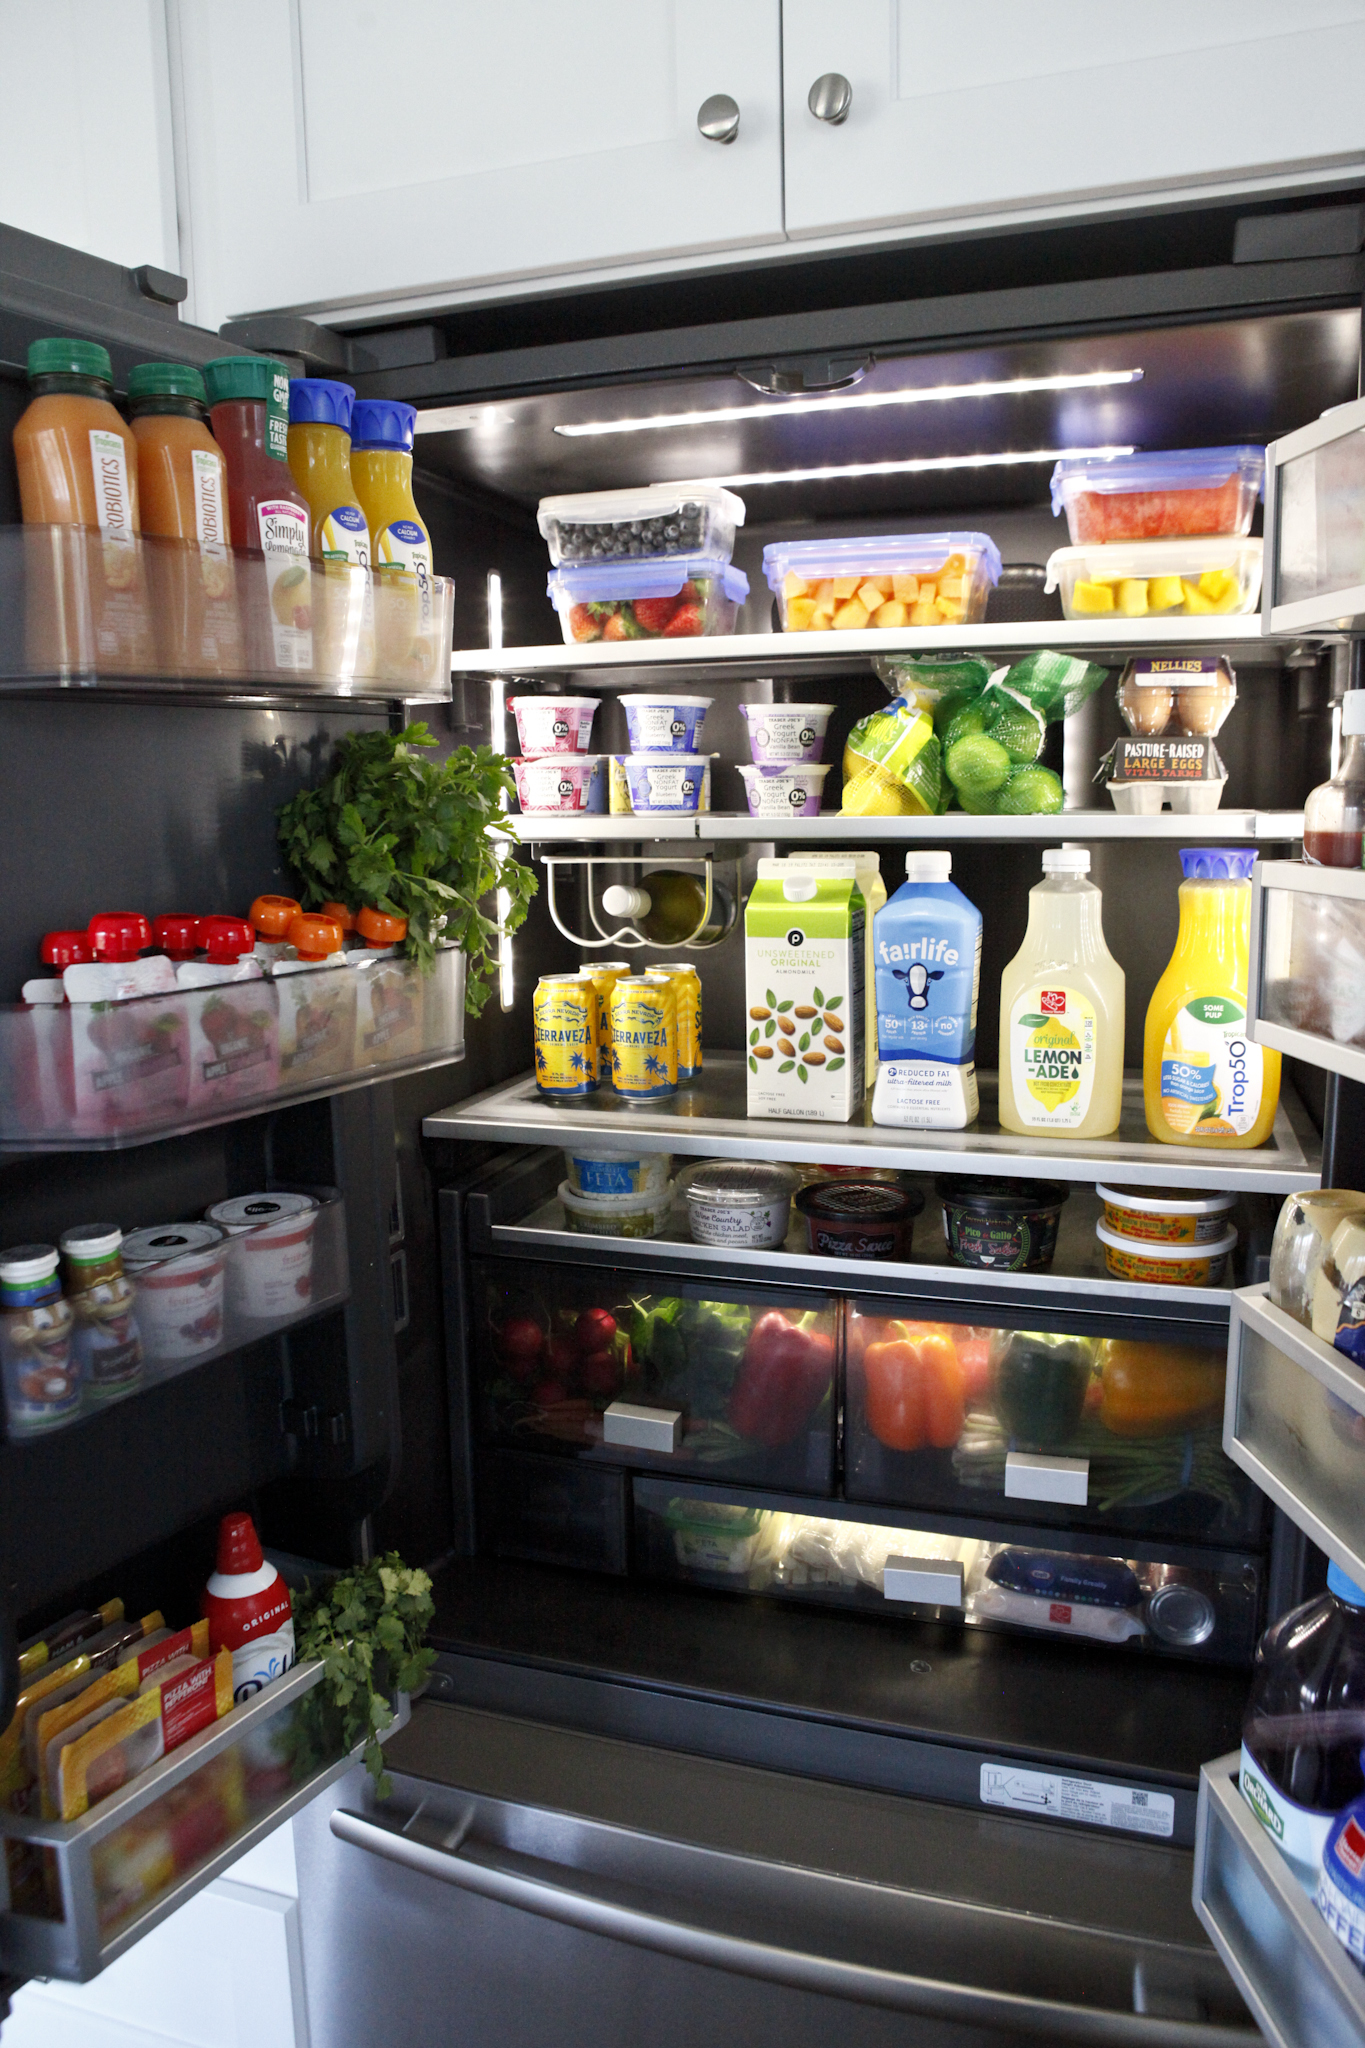 inside of the fridge